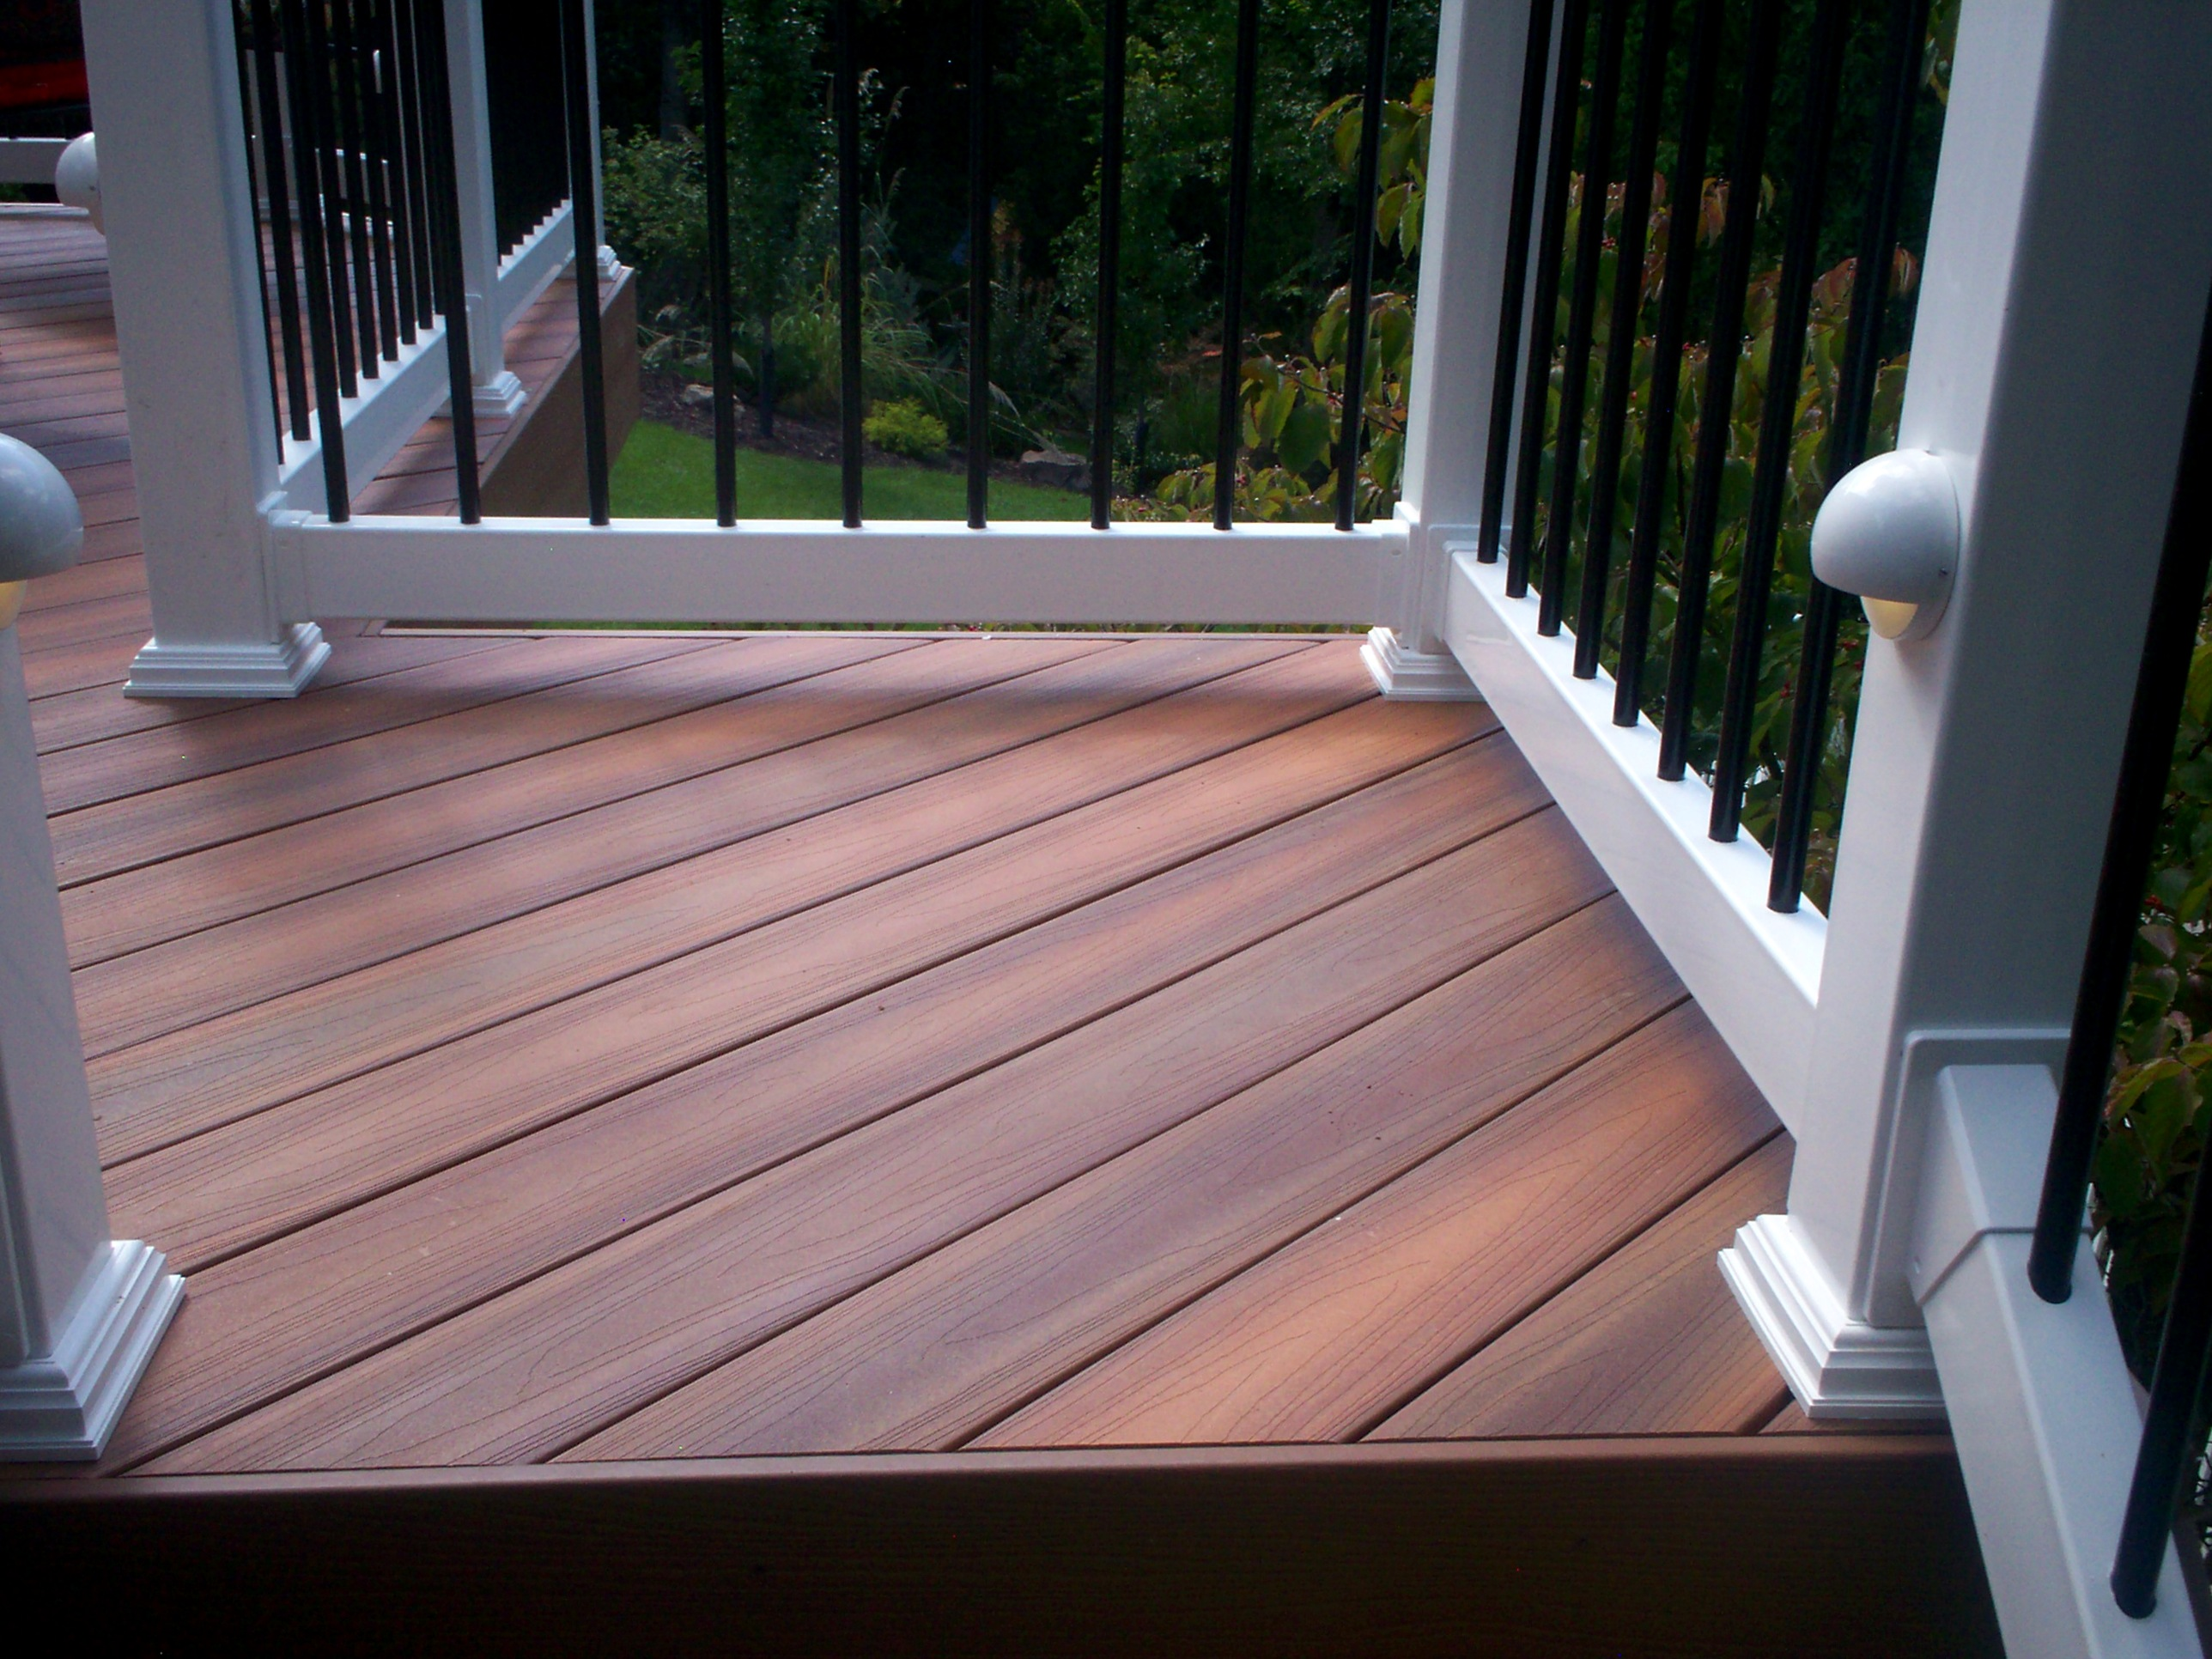 Fiberon horizon decking it s fancy stuff st louis decks screened porches pergolas by - Vinyl railing reviews ...